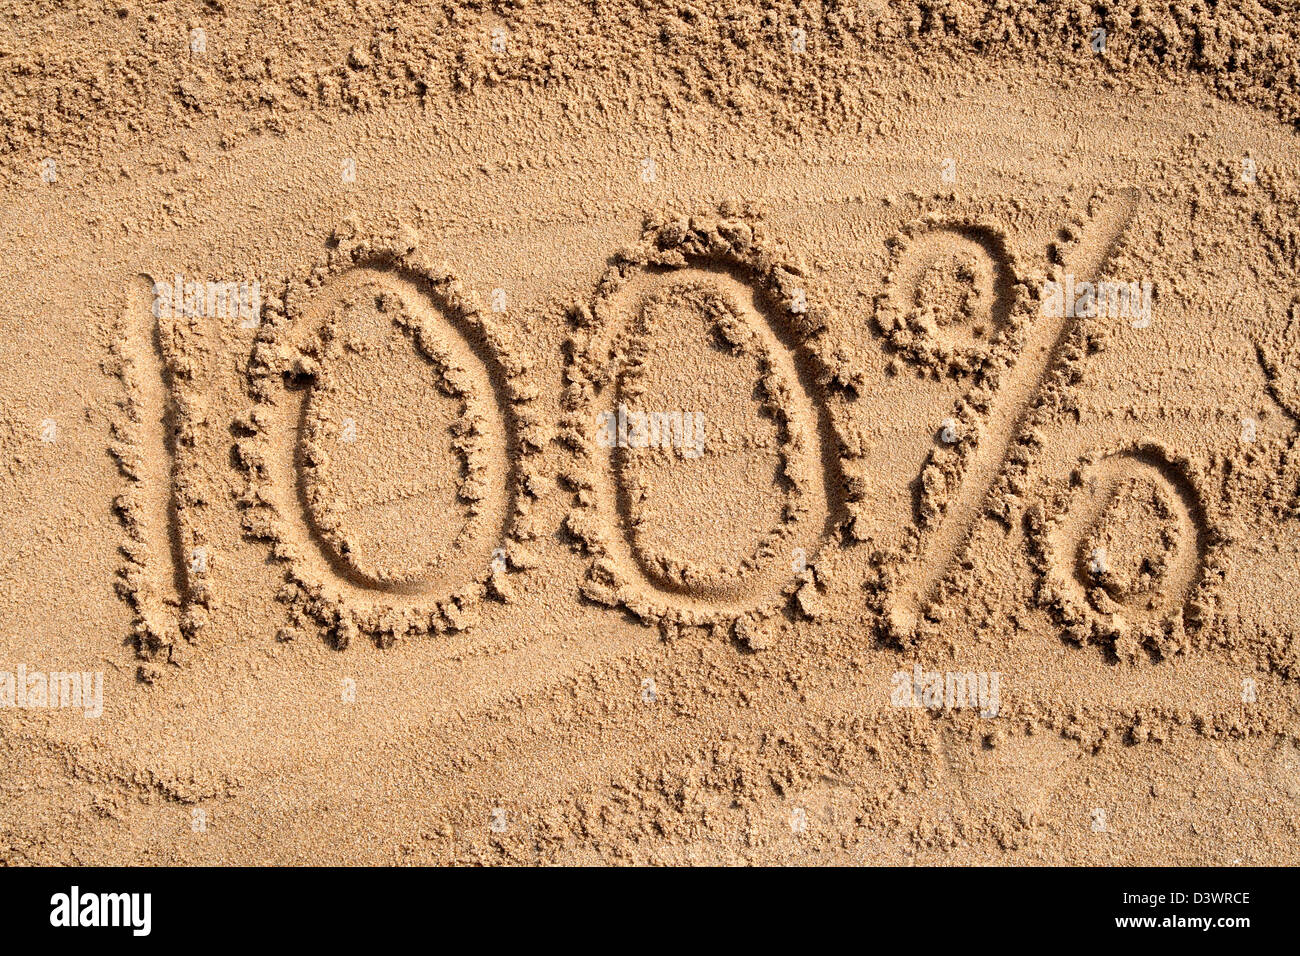 100% written on a sandy beach. - Stock Image